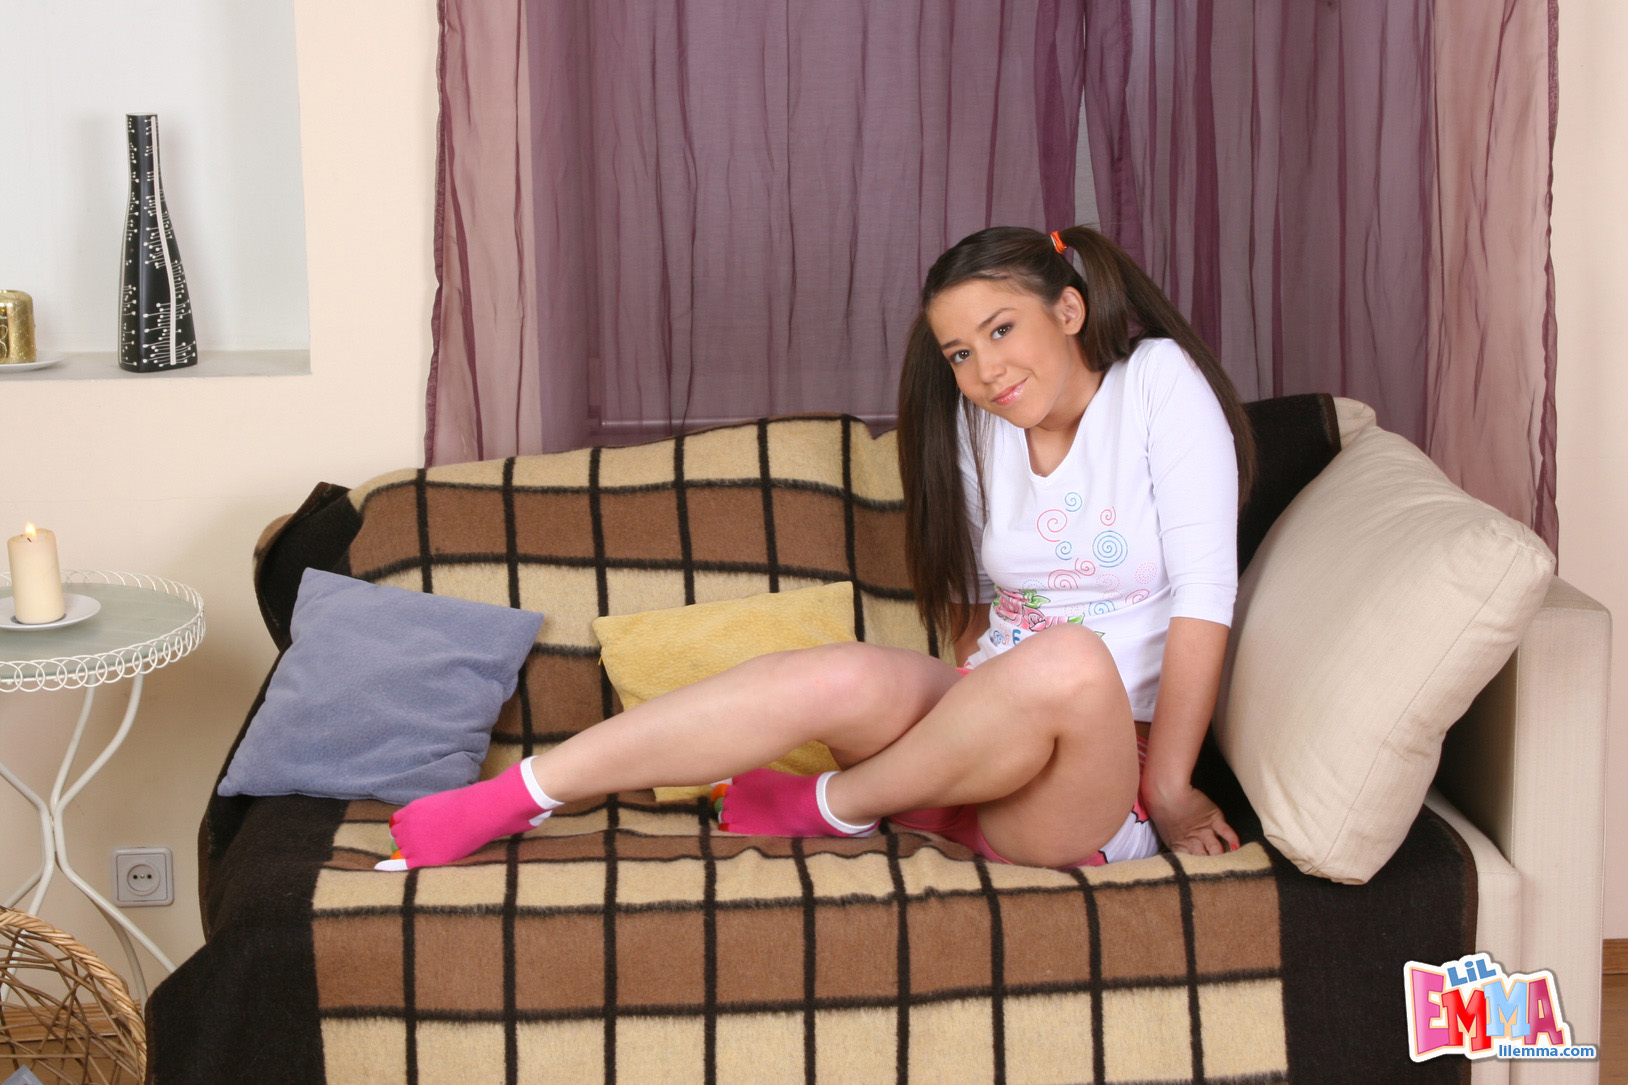 Hot Teen Spreading Her Legs Wide - Picture 1